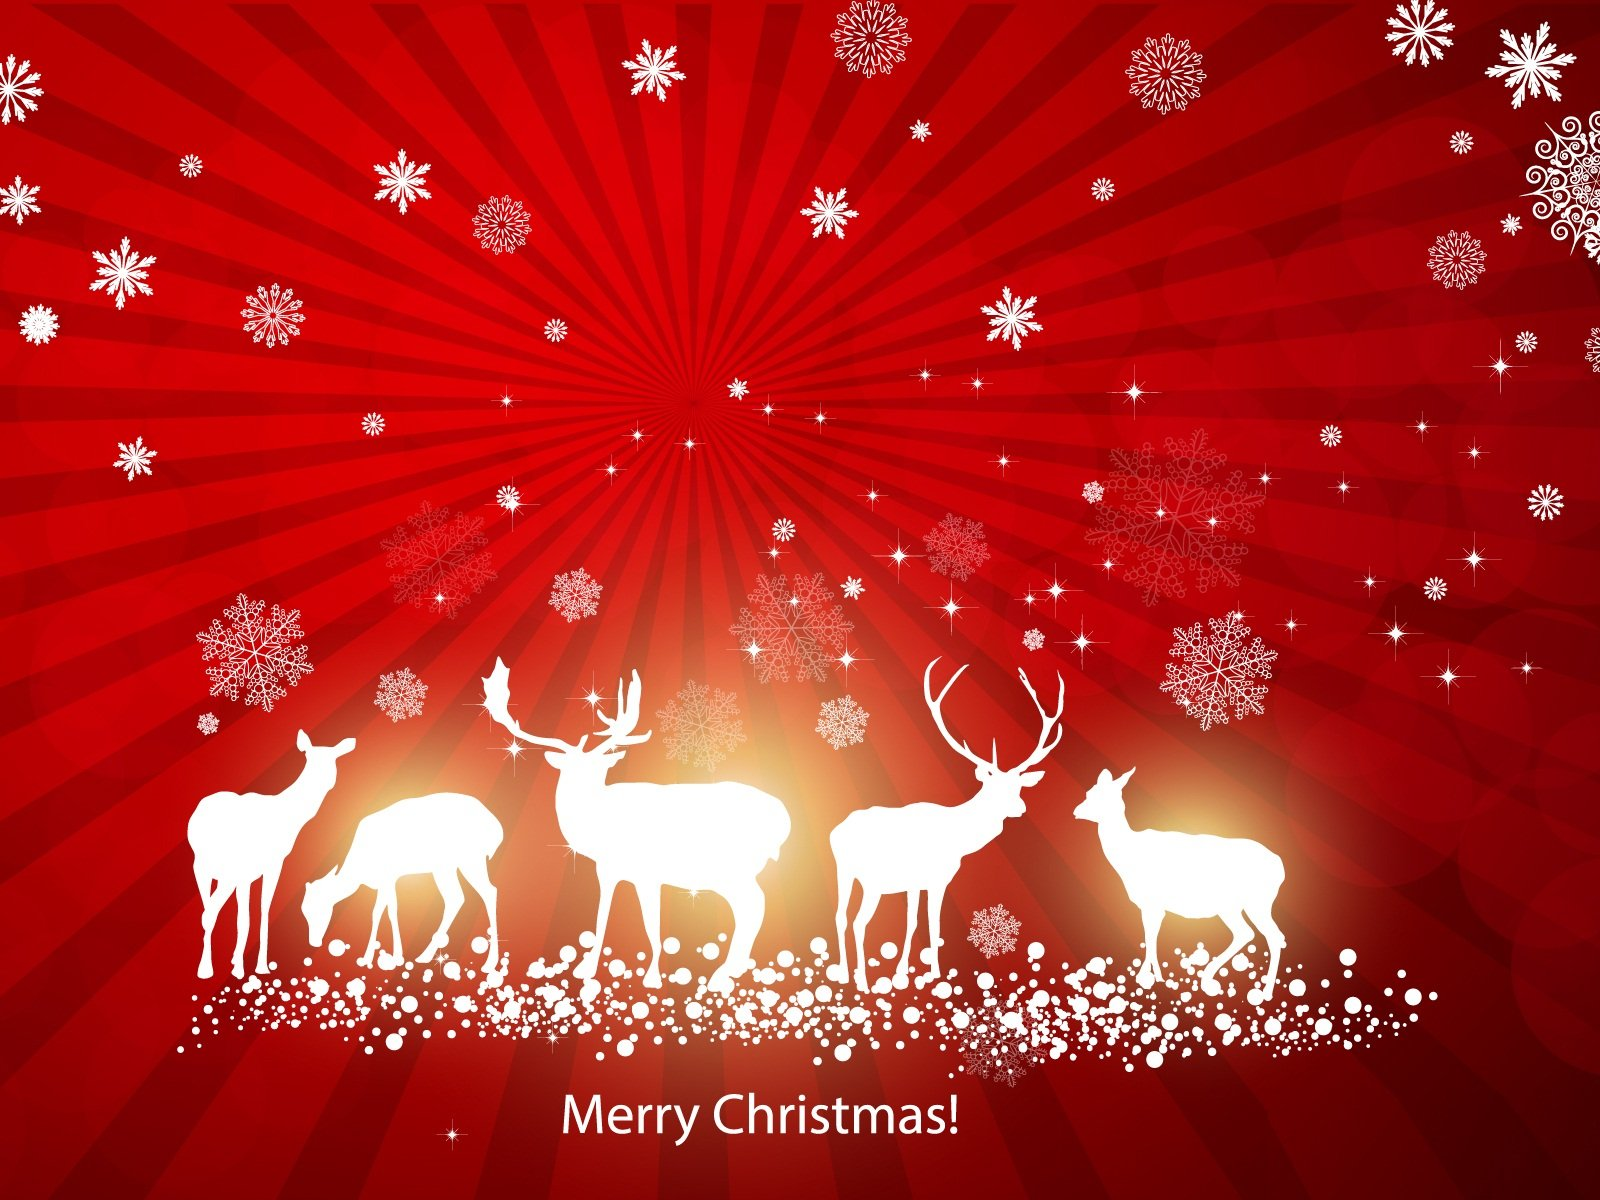 merry christmas wallpapers free wallpapersafari